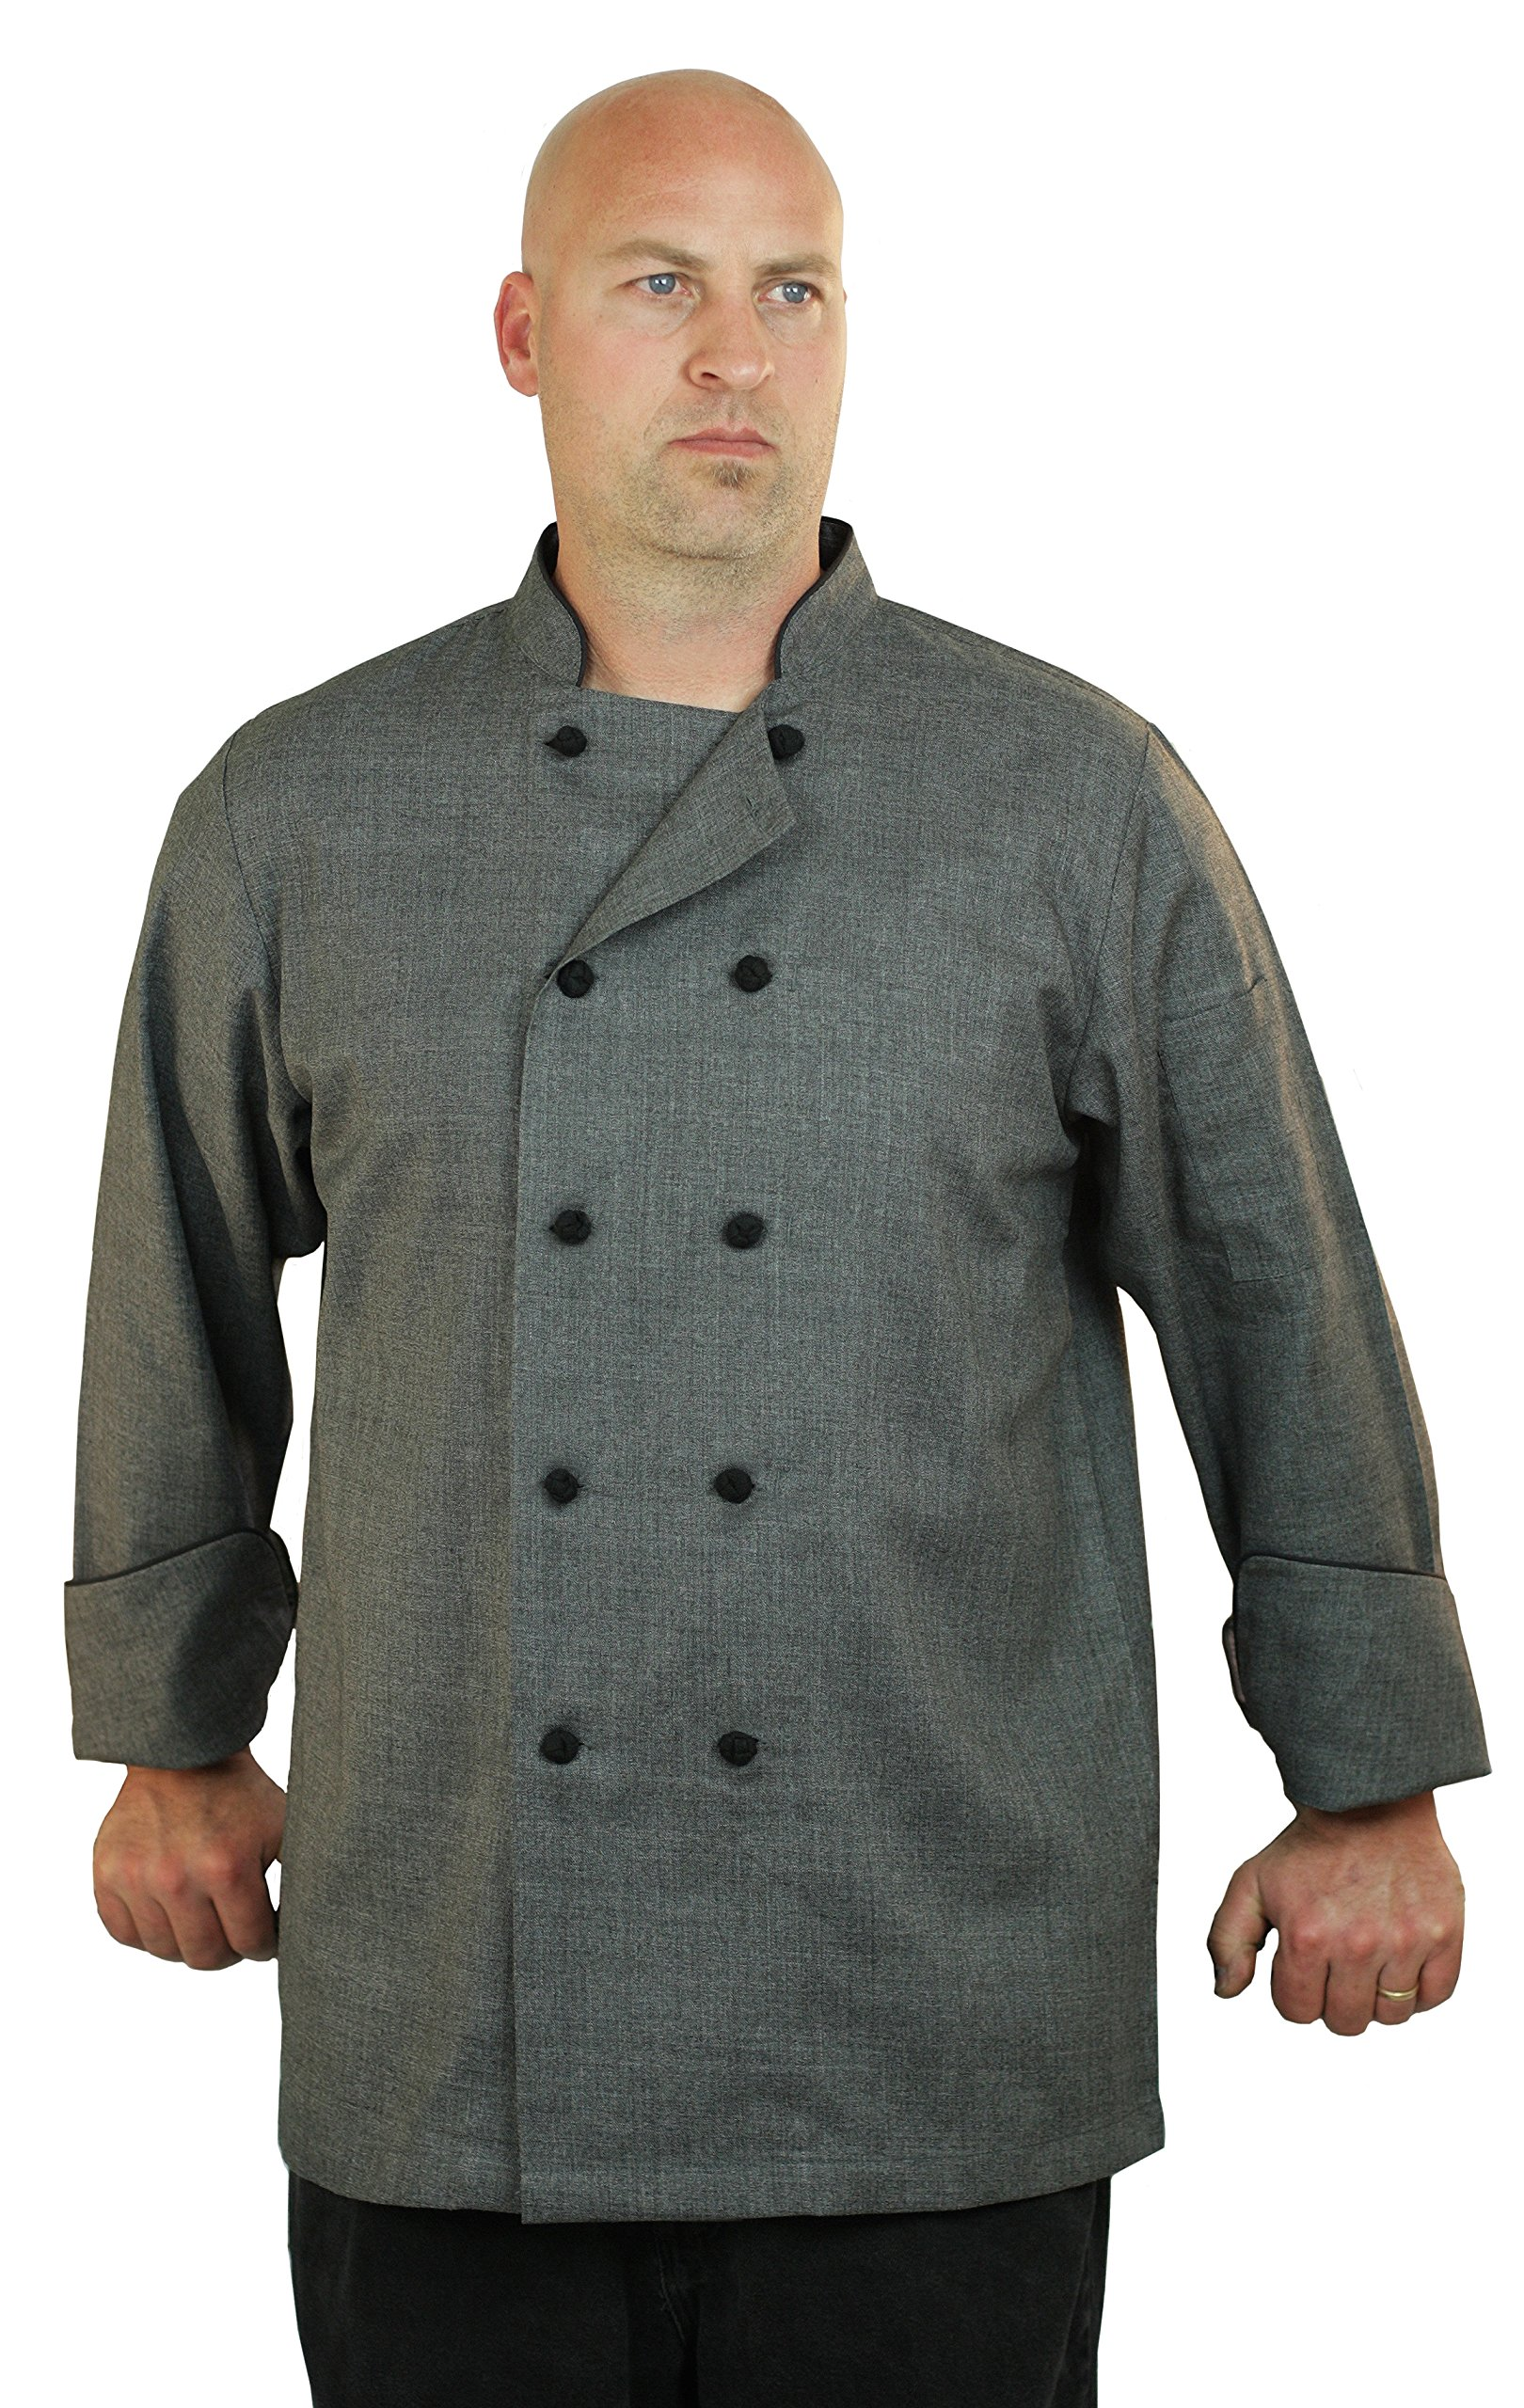 ASD Living Premium Sateen Heather Grey Long Sleeve Chef Coat,X-Large